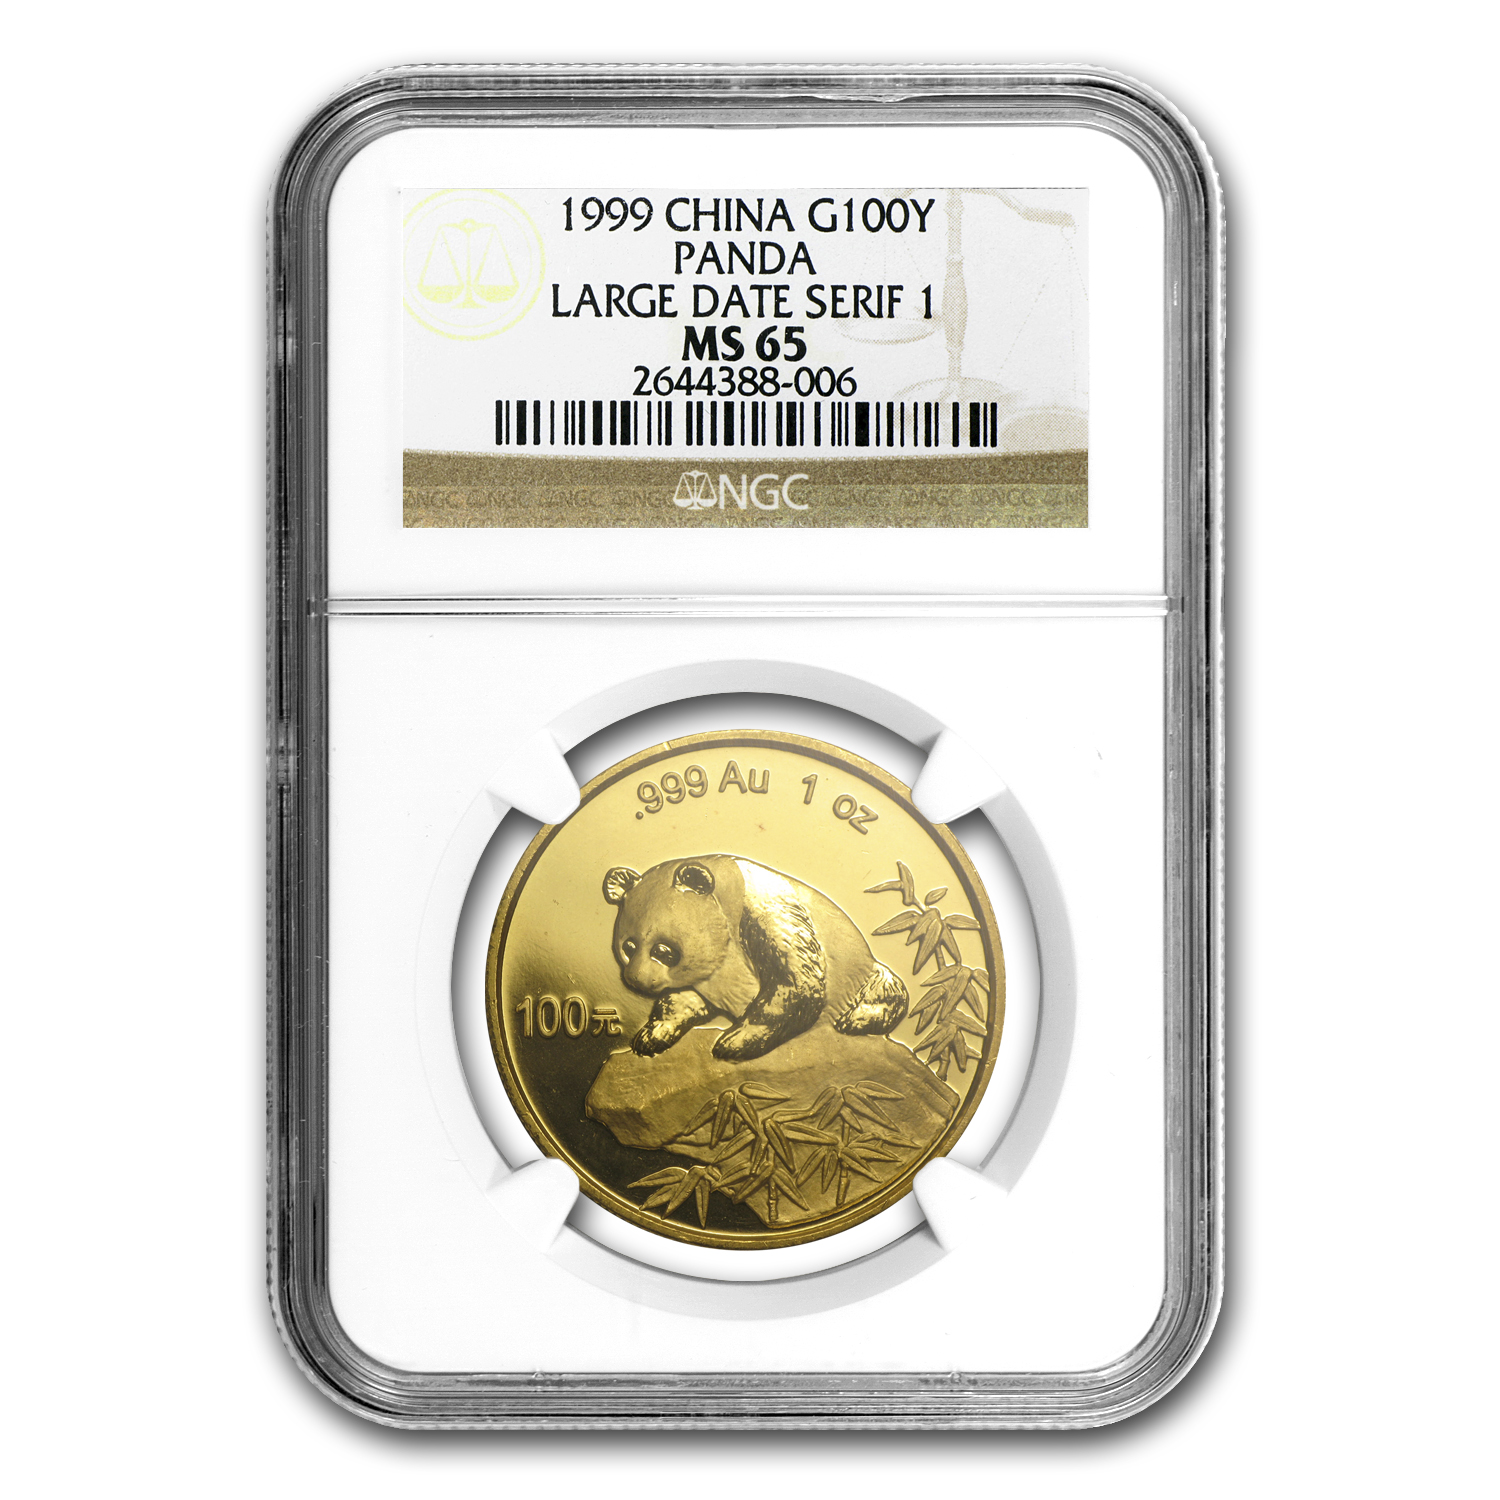 1999 China 1 oz Gold Panda Large Date/Serif 1 MS-65 NGC